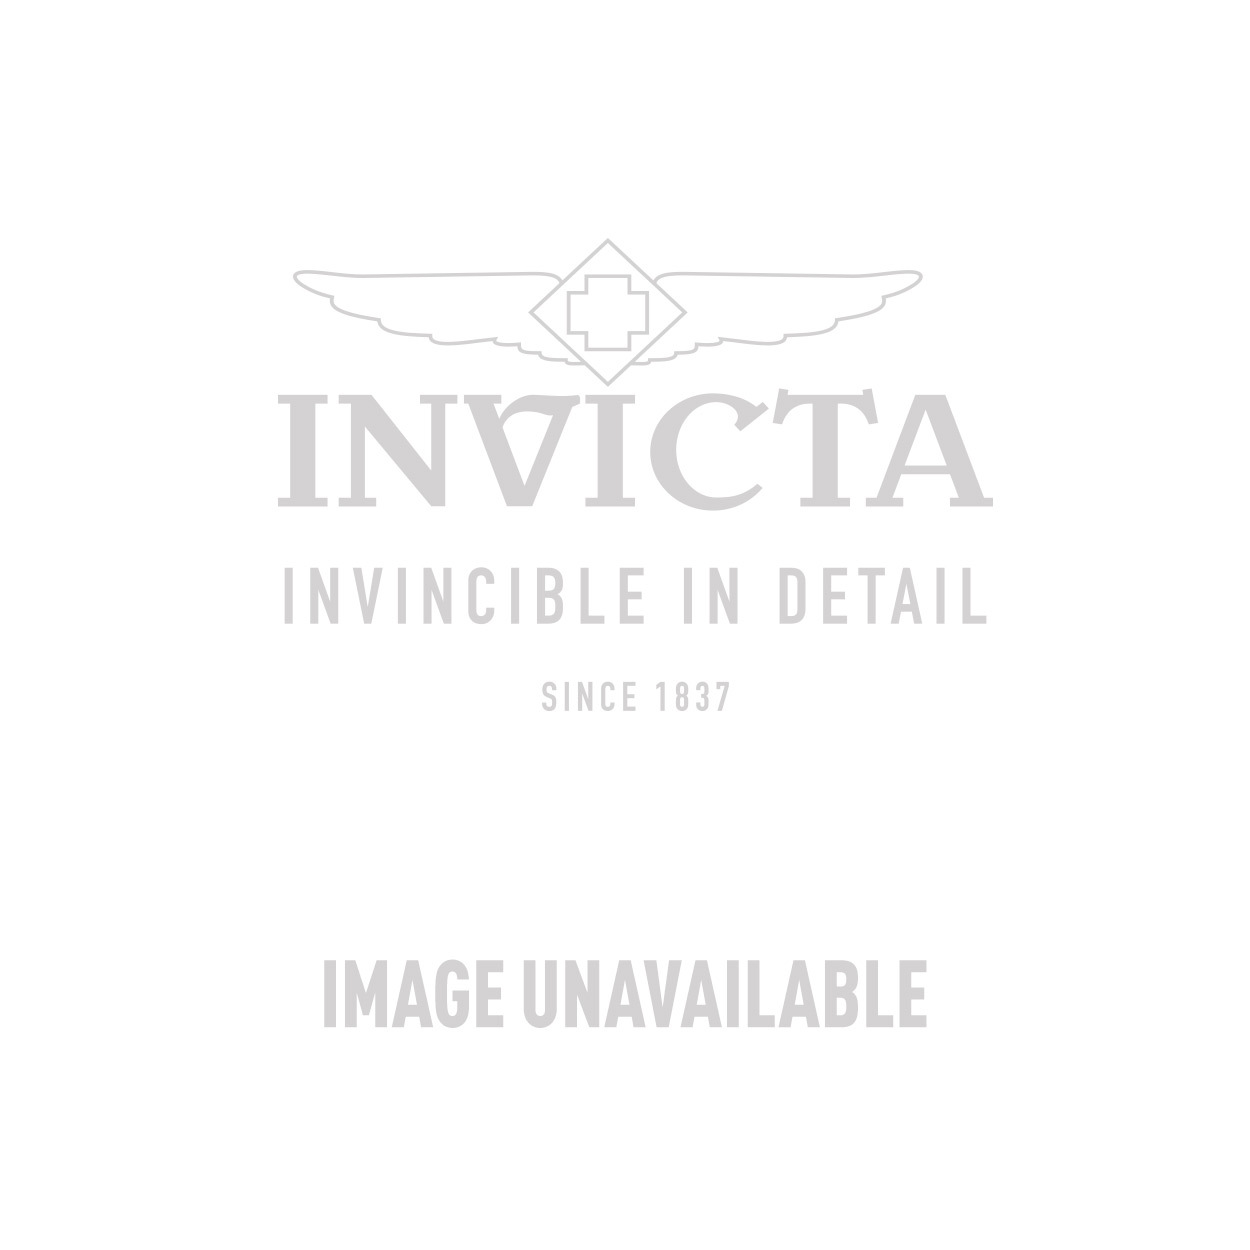 Invicta Bolt Swiss Made Quartz Watch - Titanium, Stainless Steel case Stainless Steel band - Model 17156